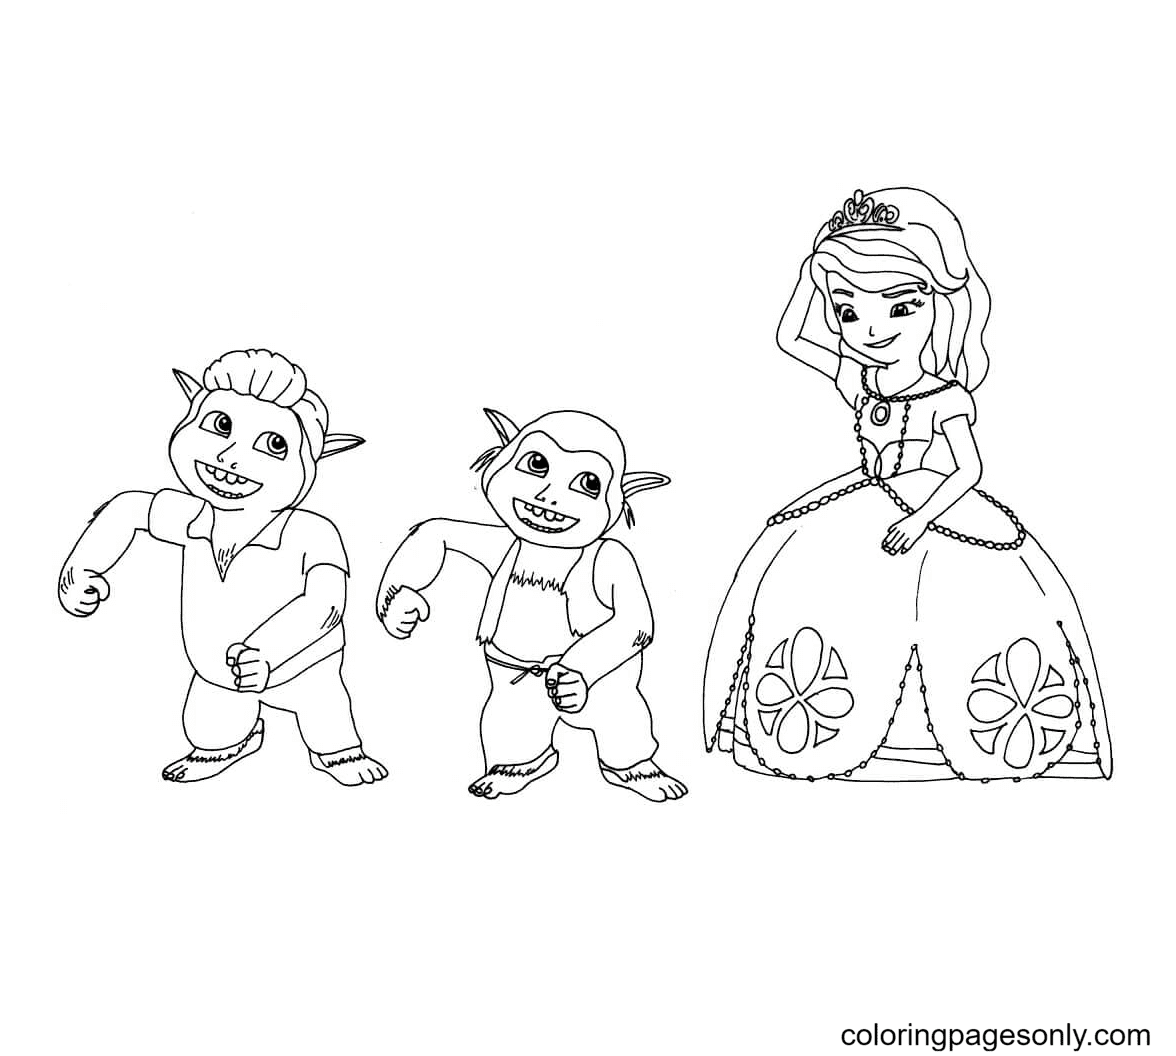 Sofia and the Trolls Coloring Page